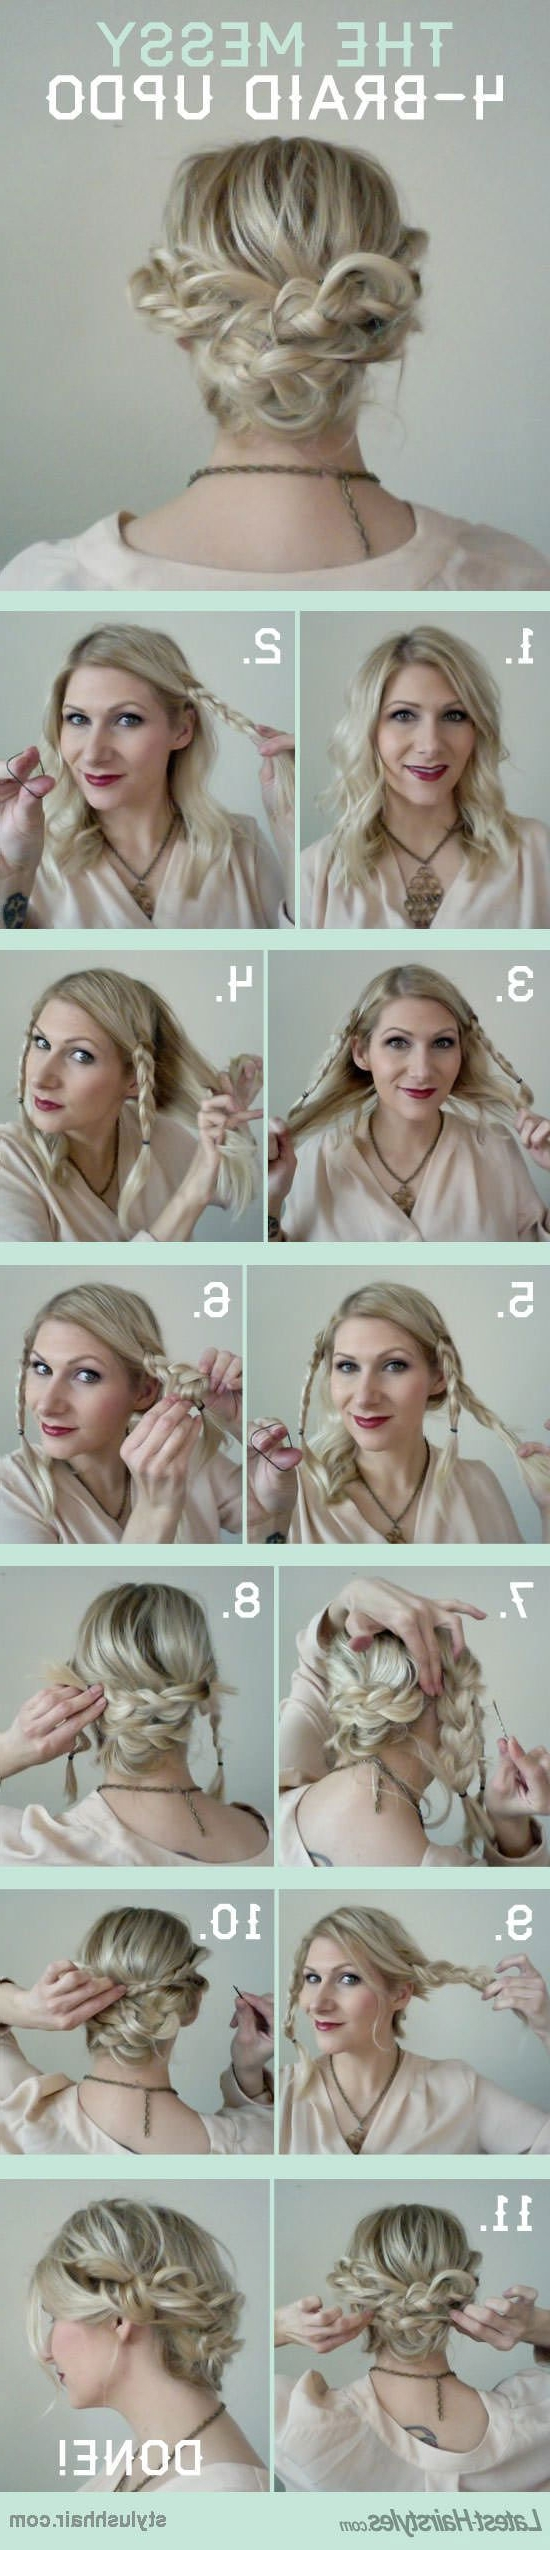 15 Cute And Easy Hairstyle Tutorials For Medium Length Hair – Gurl Inside Quick And Easy Updos For Medium Length Hair (View 2 of 15)